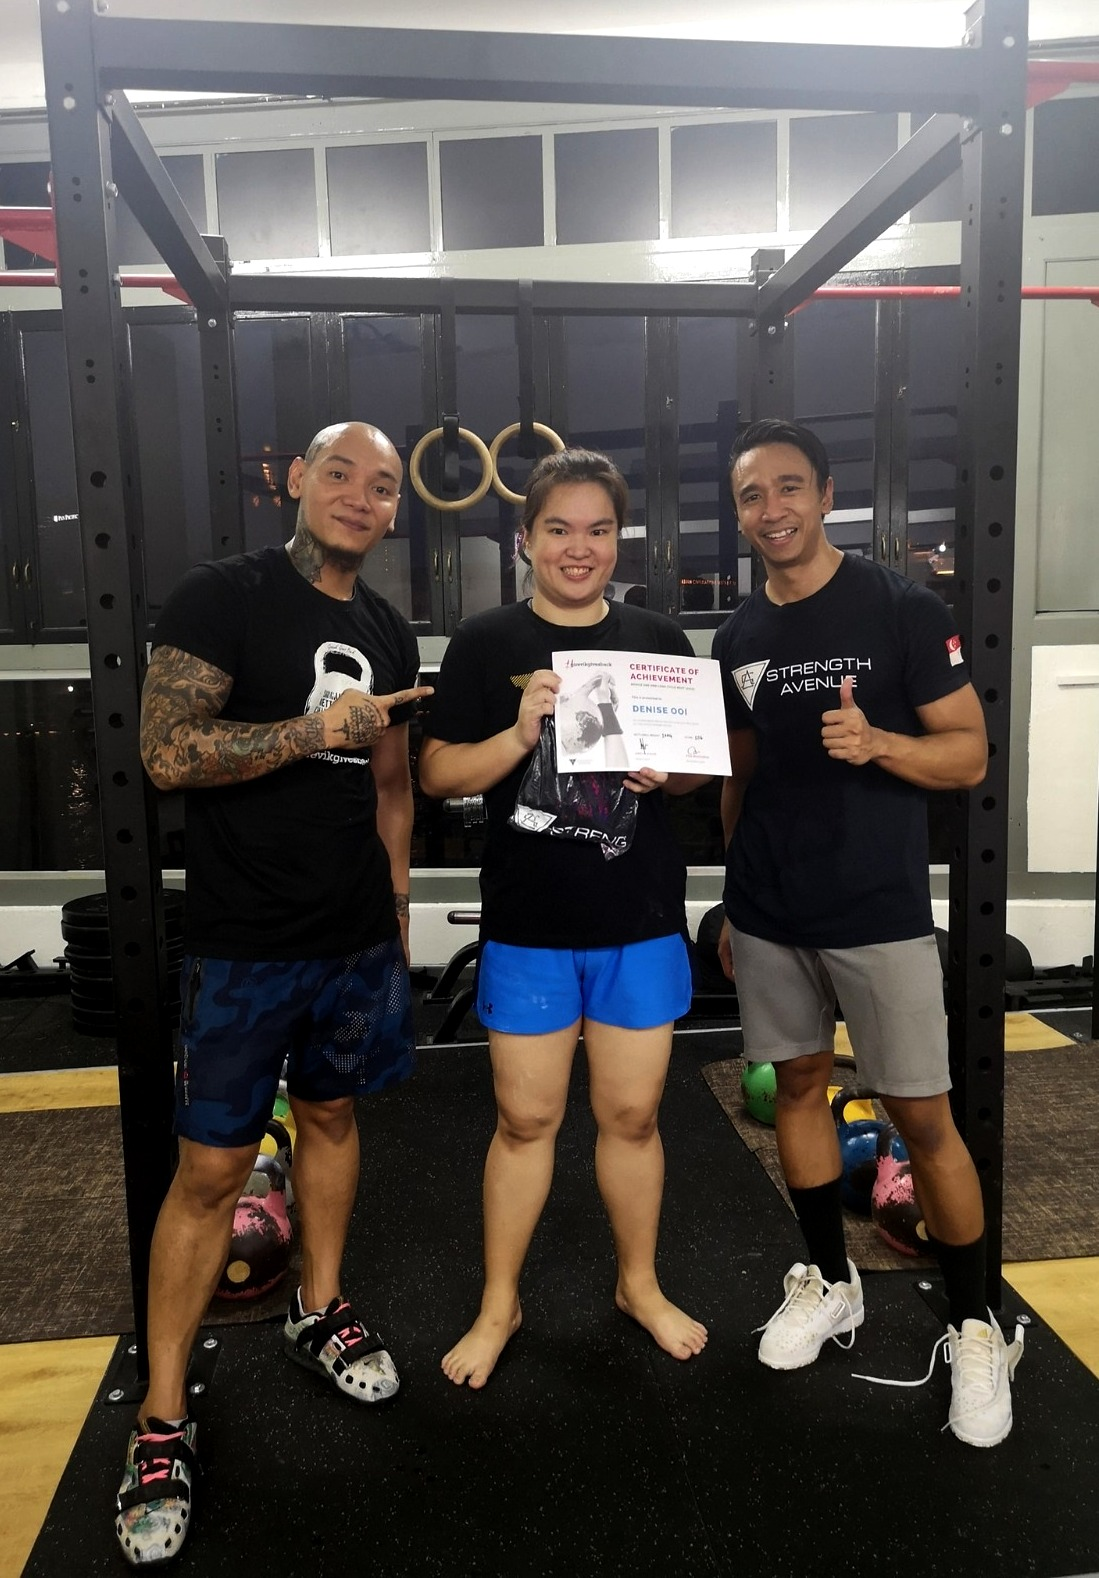 Receiving my kettlebell novice meet participation certificate was one of my proudest moments last year. This was taken with my kettlebell coaches, Andyn and Pen.